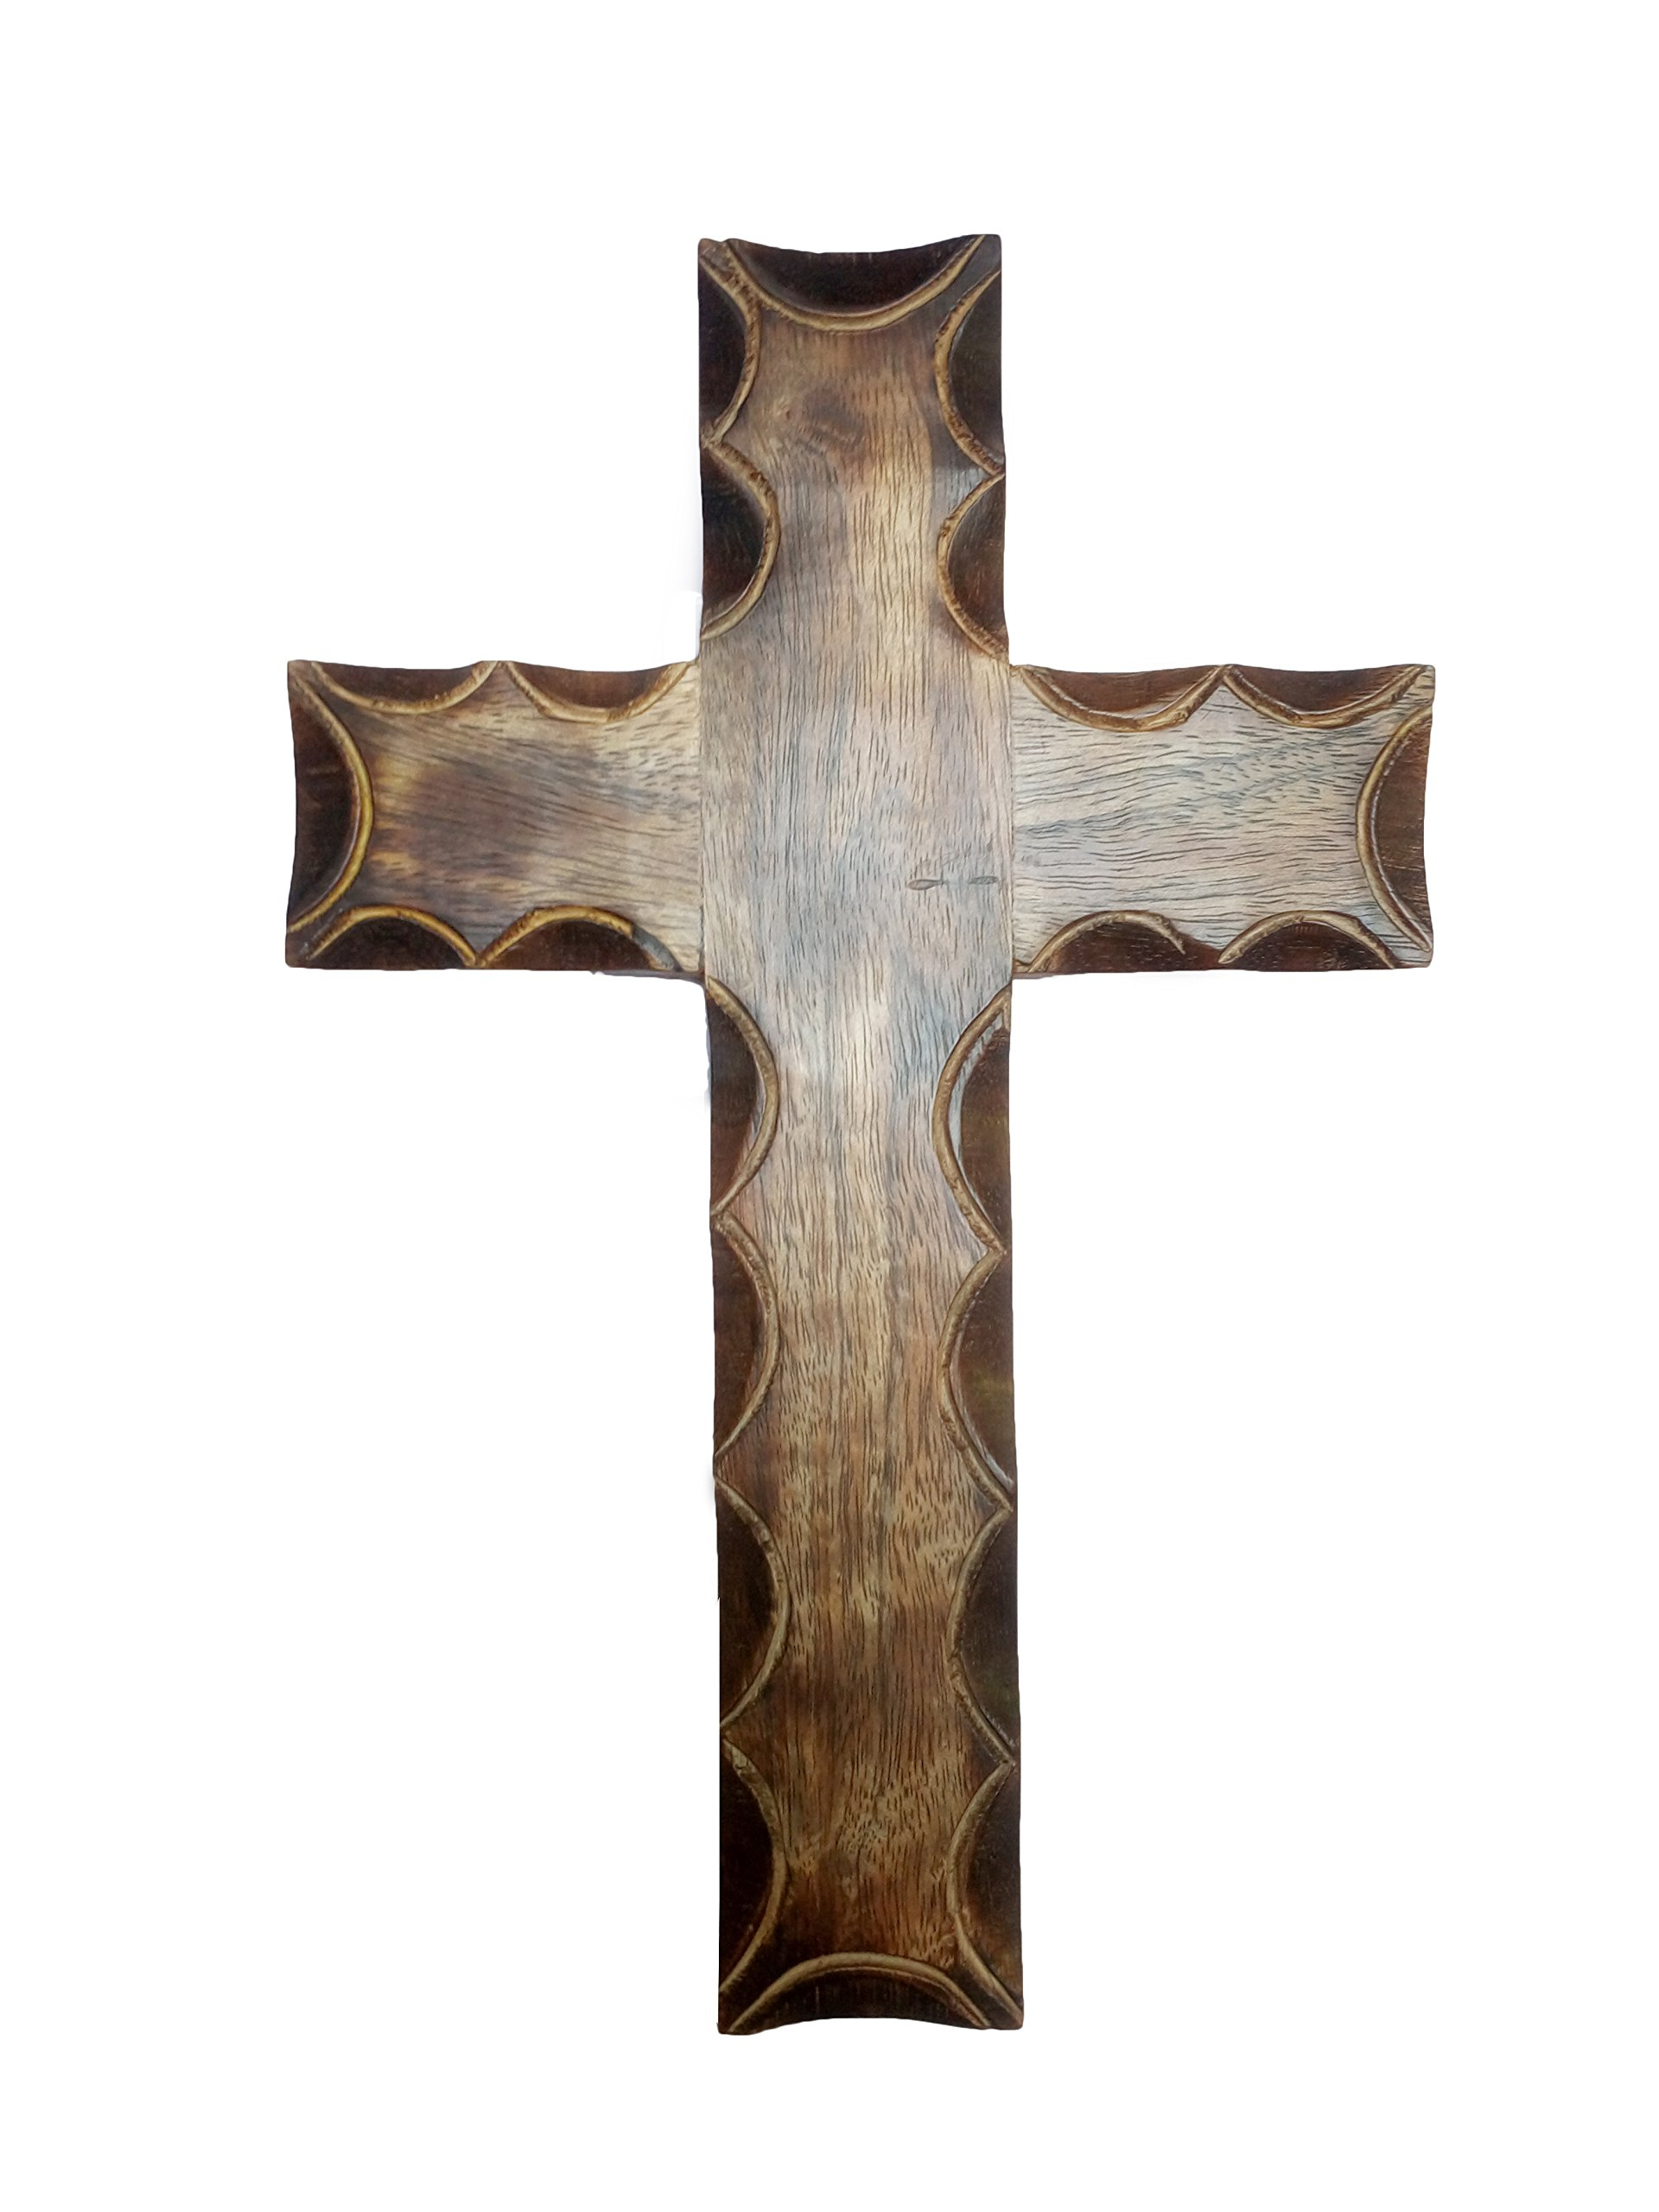 Hind Handicrafts Antique Mango Wood Hand Crafted Wall Mounted Holy Cross By (12 x 8 inch) (Wooden Engraved) (Hardwood)